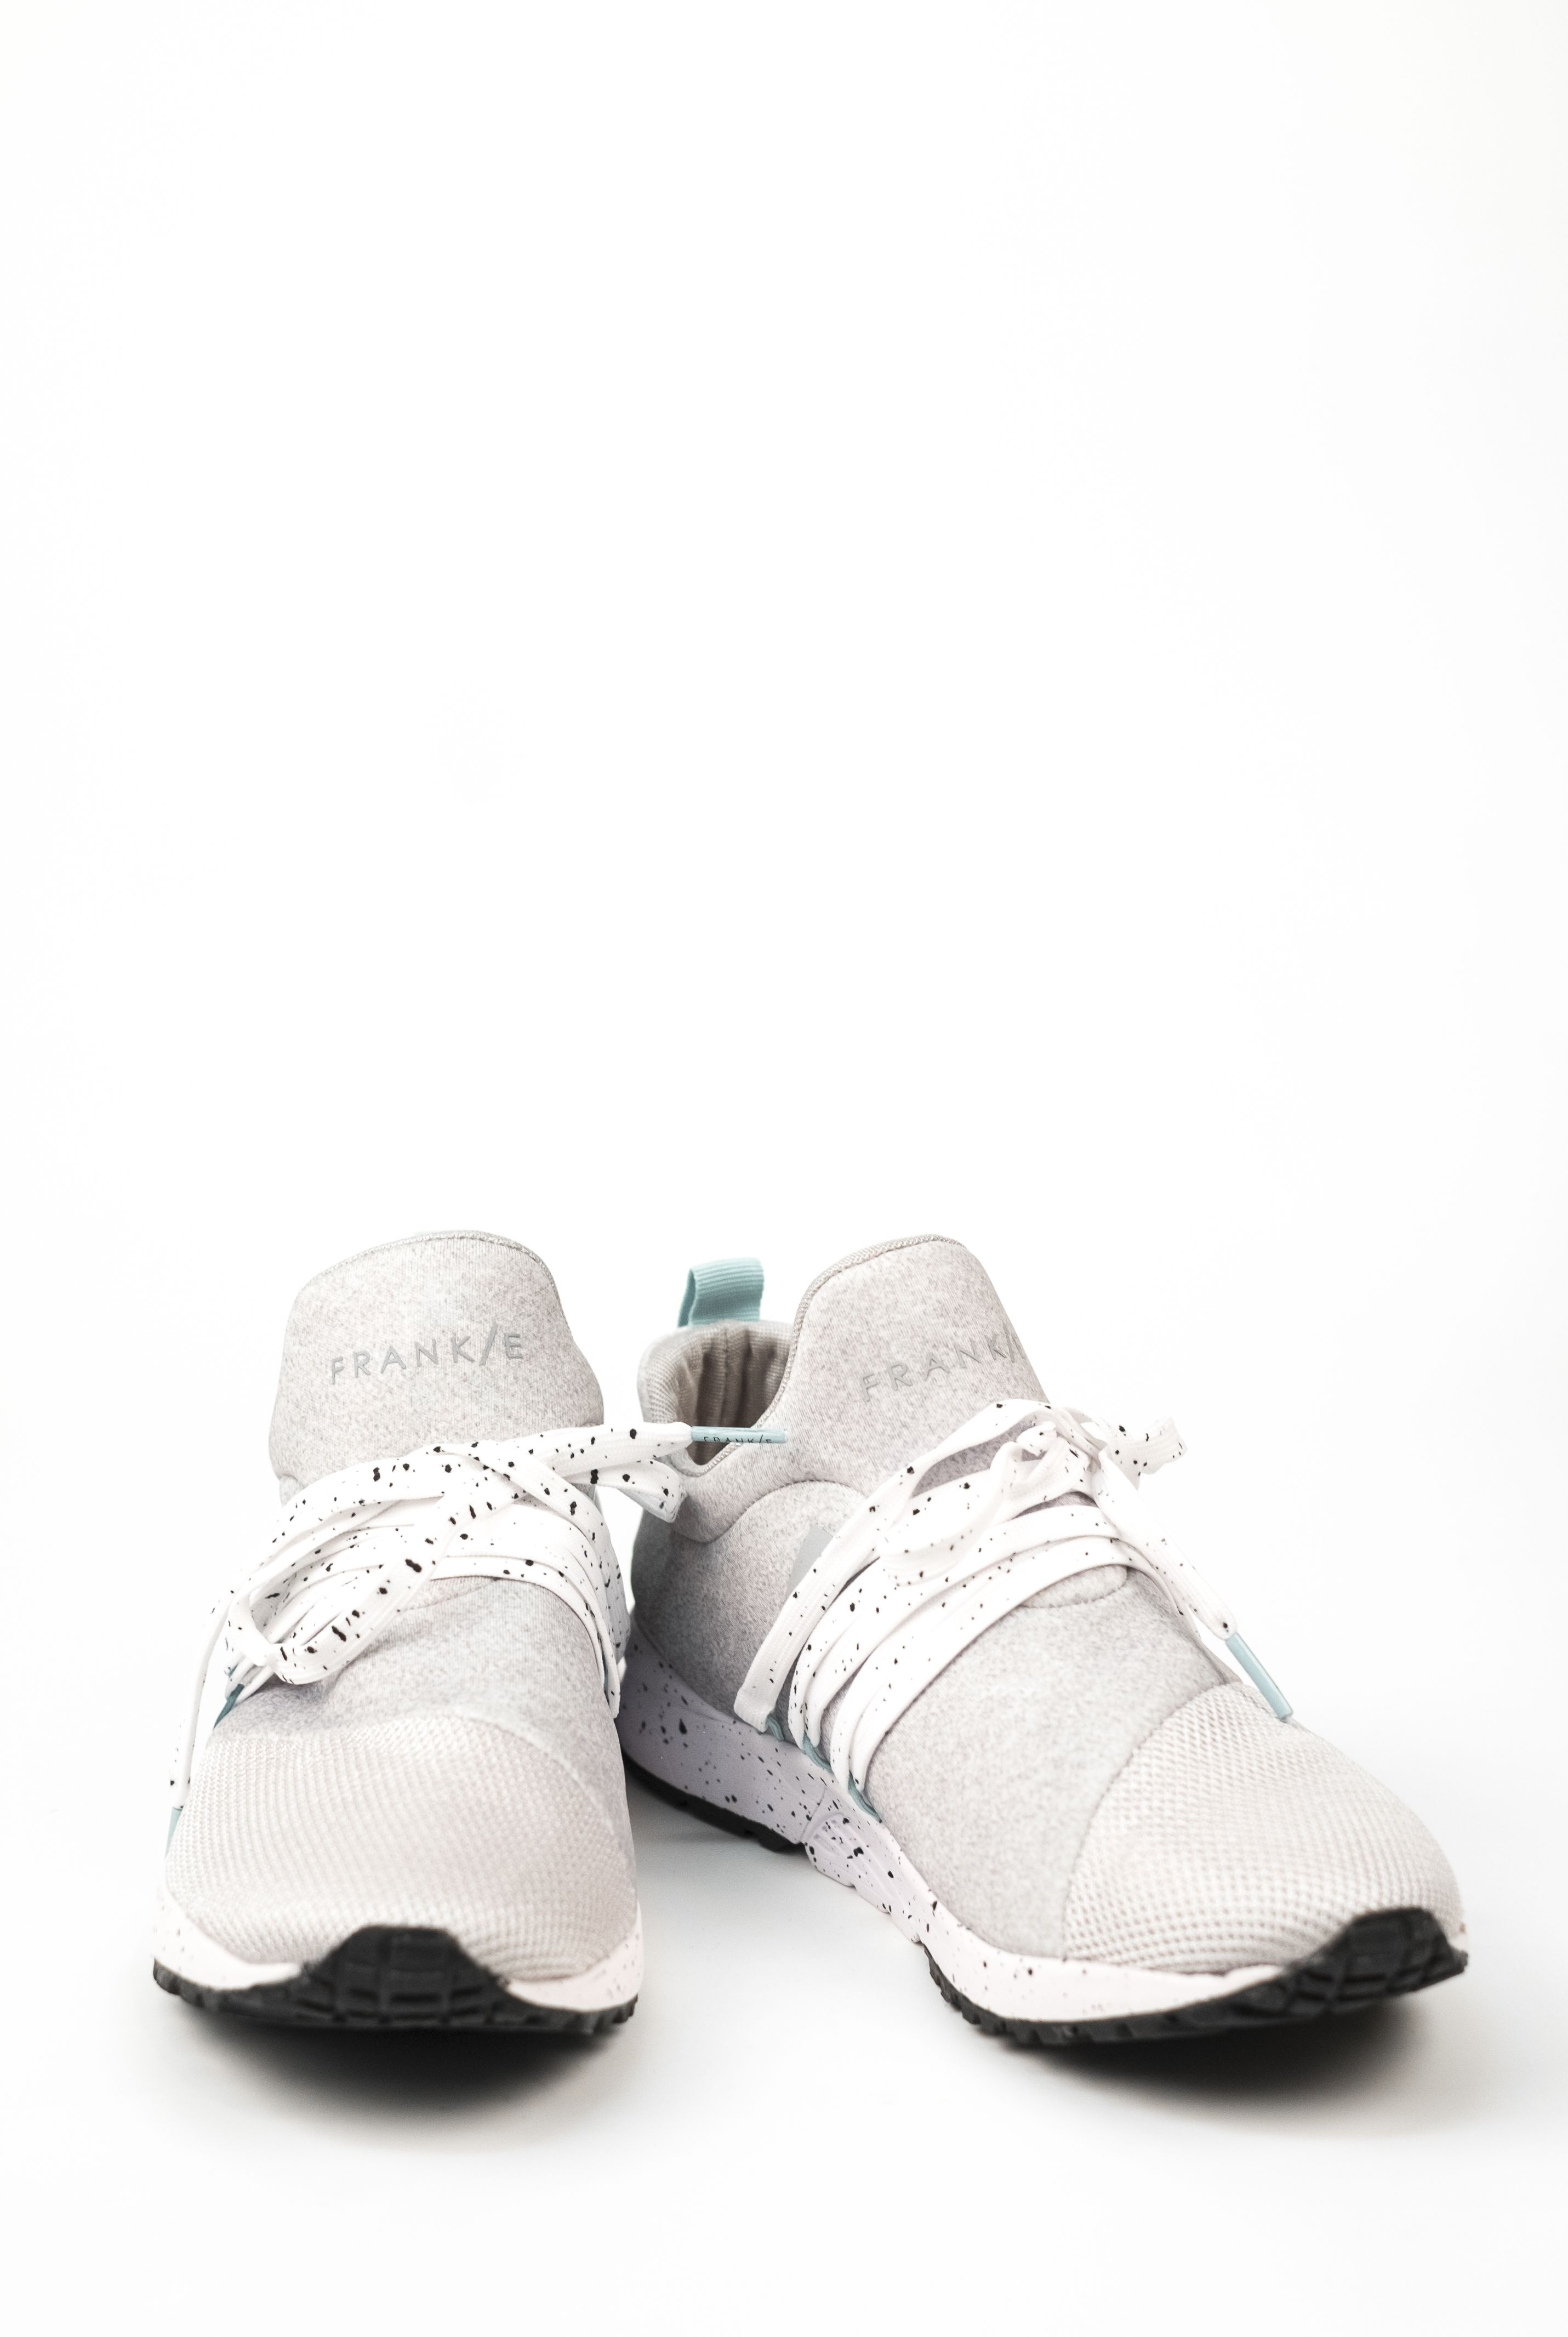 franke fire | shoes! | pinterest | fire, franke and shoes